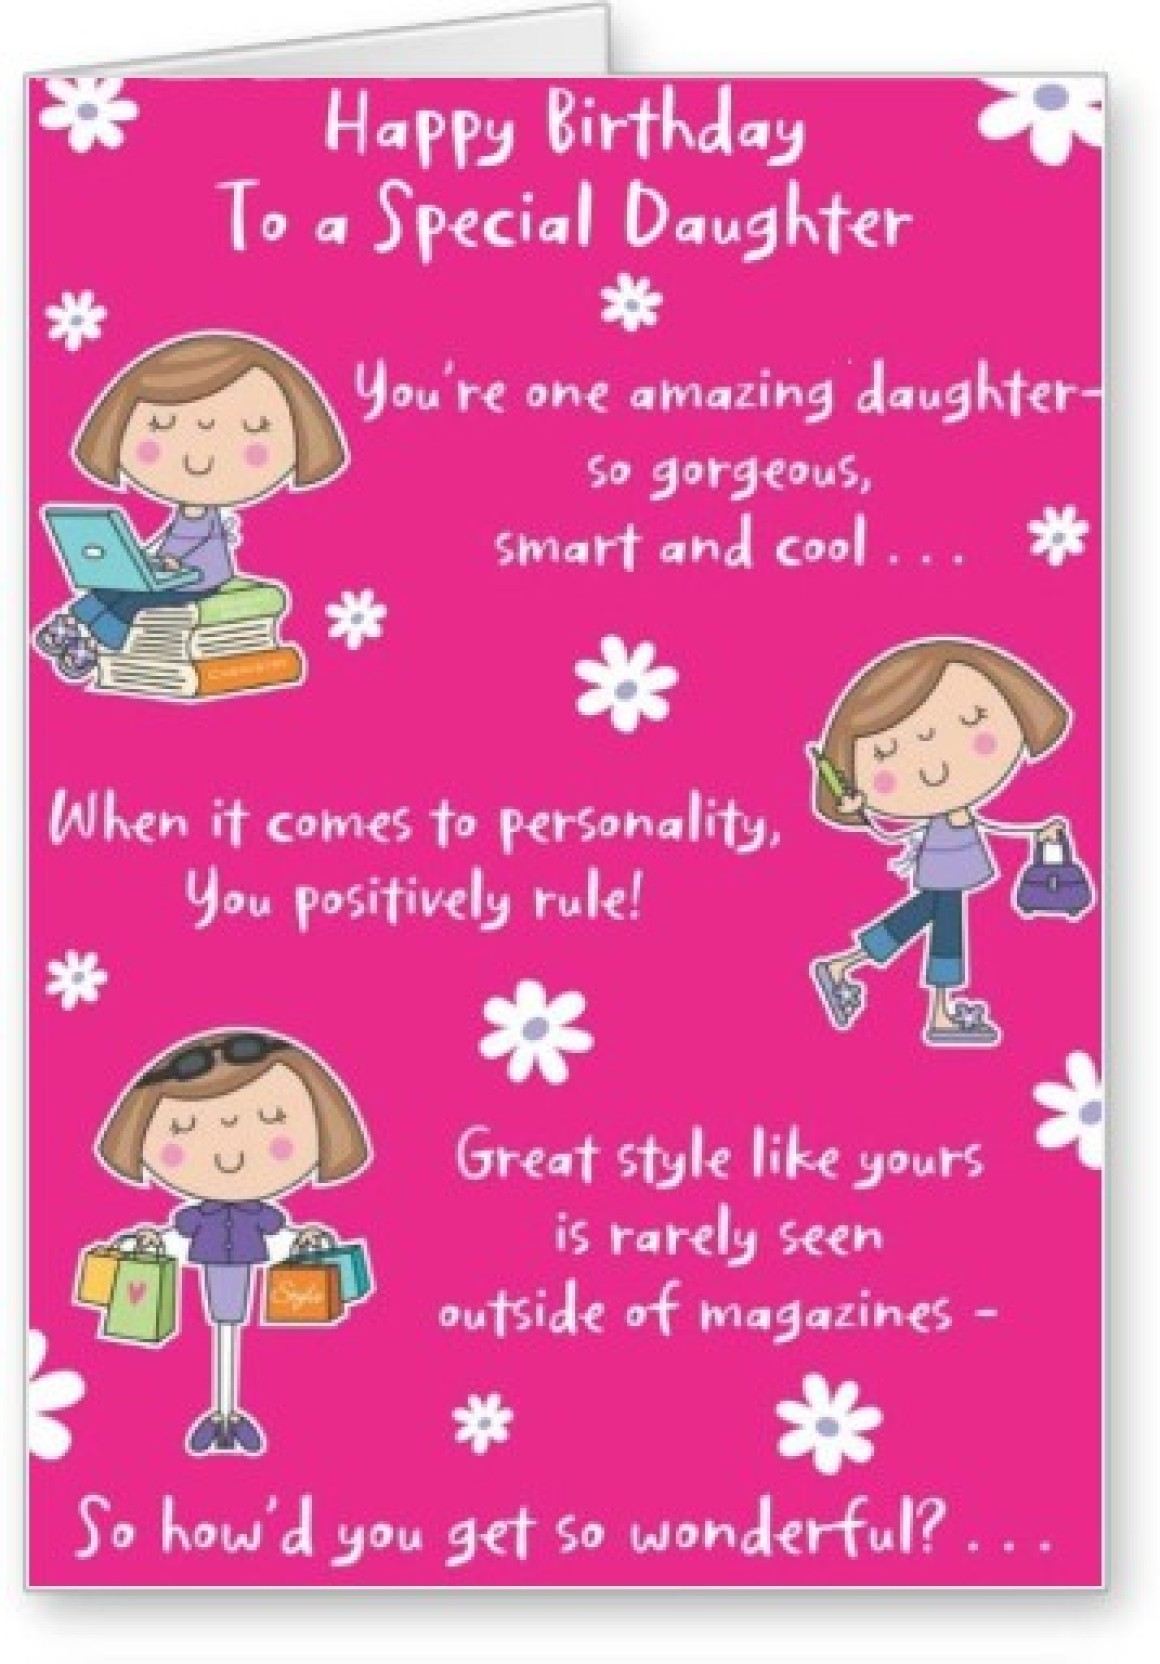 Lolprint Special Daughter Happy Birthday Greeting Card Multicolor Pack Of 1